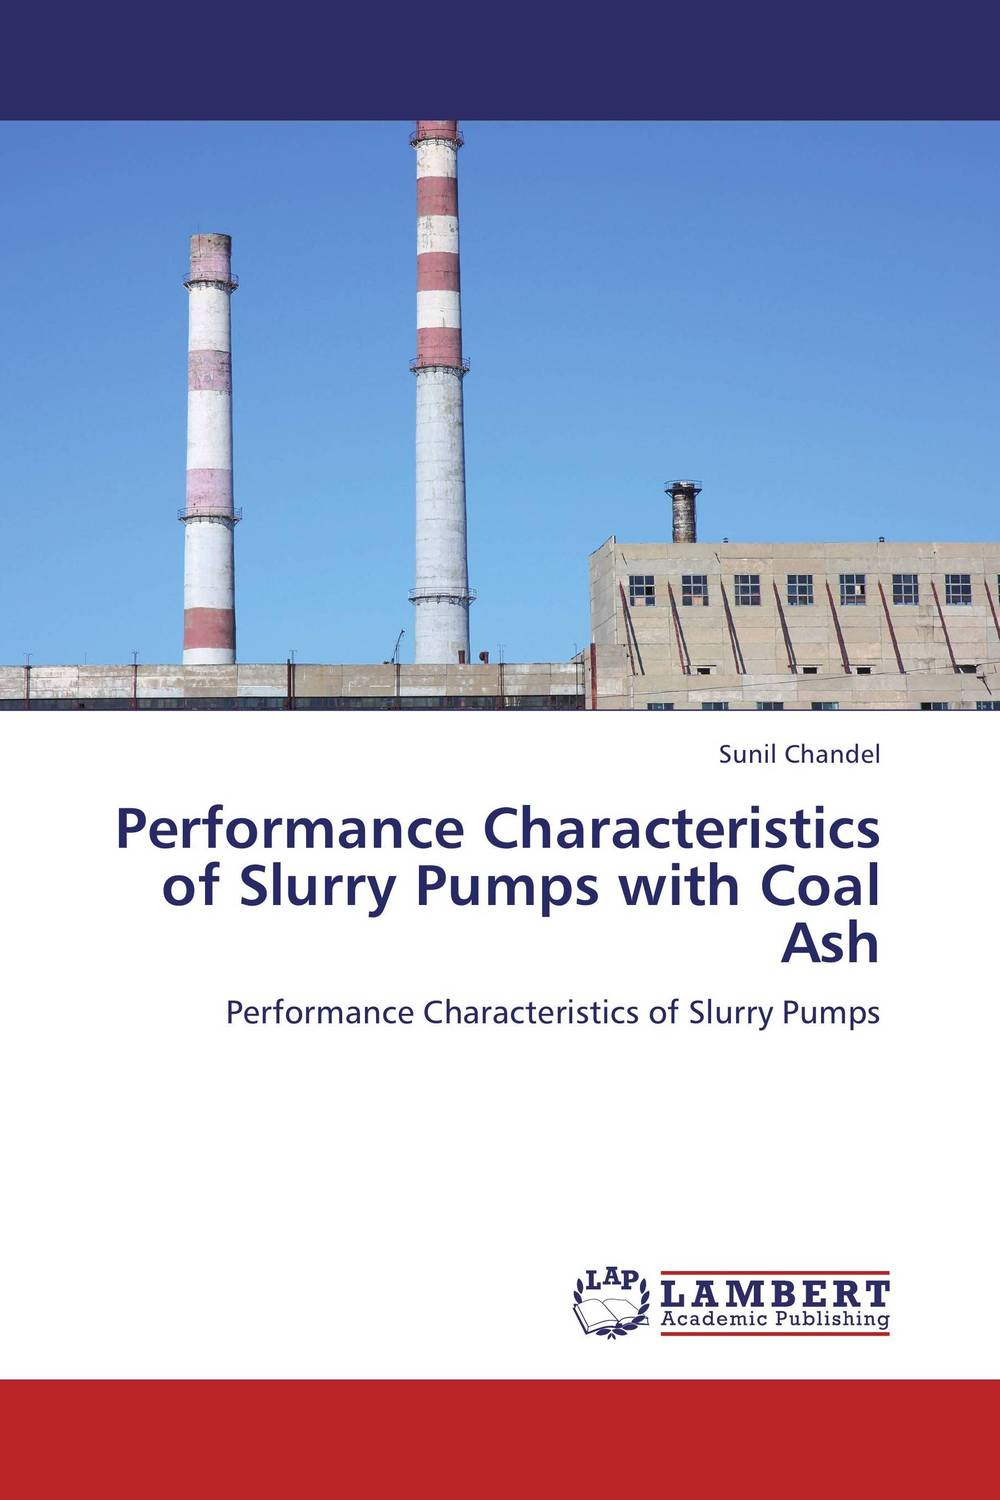 Performance Characteristics of Slurry Pumps with Coal Ash coal handling and equipment selection